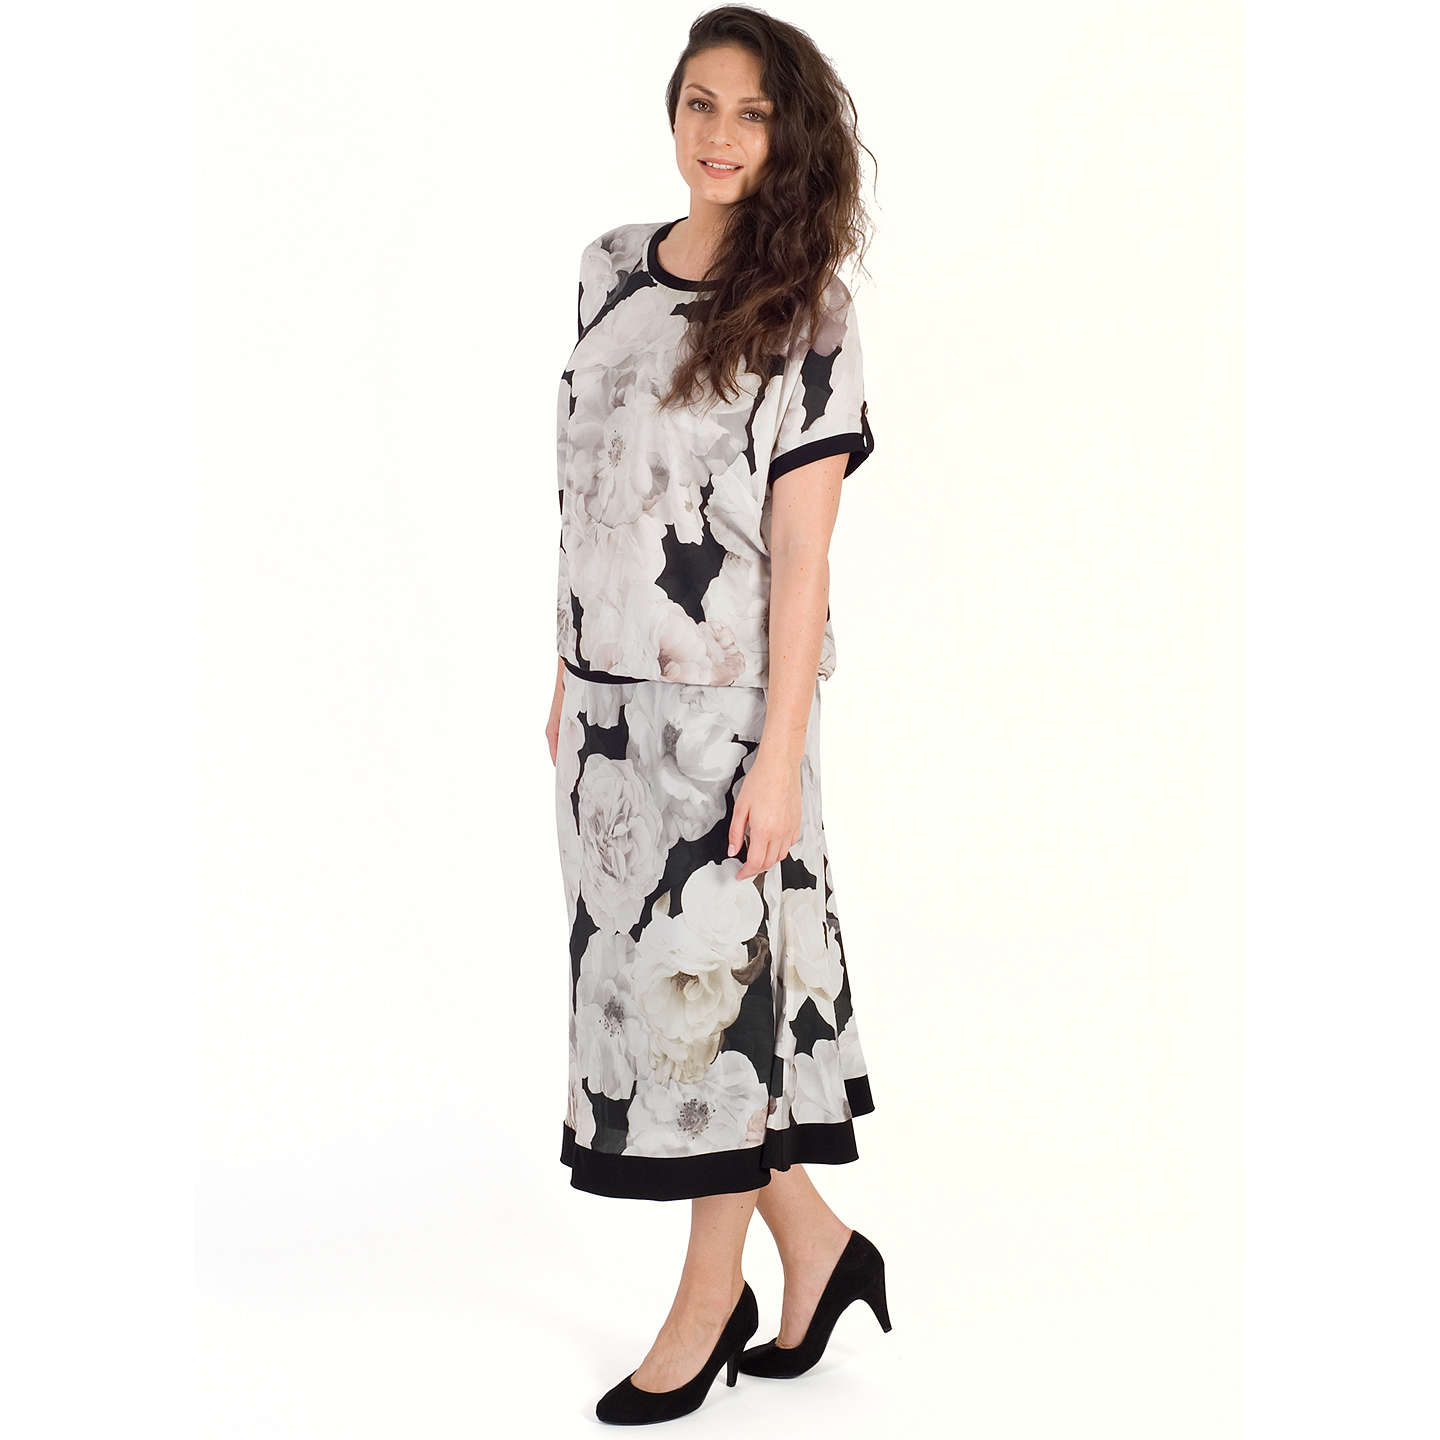 BuyChesca Contrast Trim Rose Print Skirt , Blush, 12-14 Online at johnlewis.com